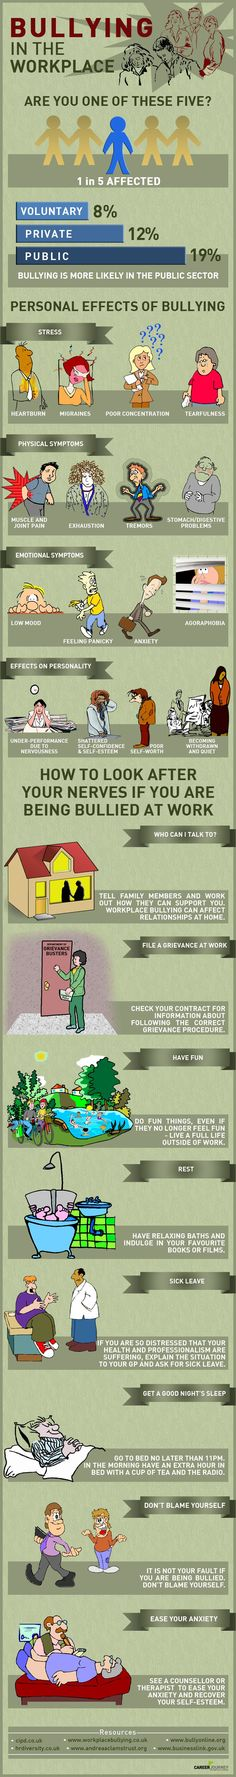 Bullying In The Workplace - Are You One Of The 1 In 5 Affected? published on Social-Hire.com